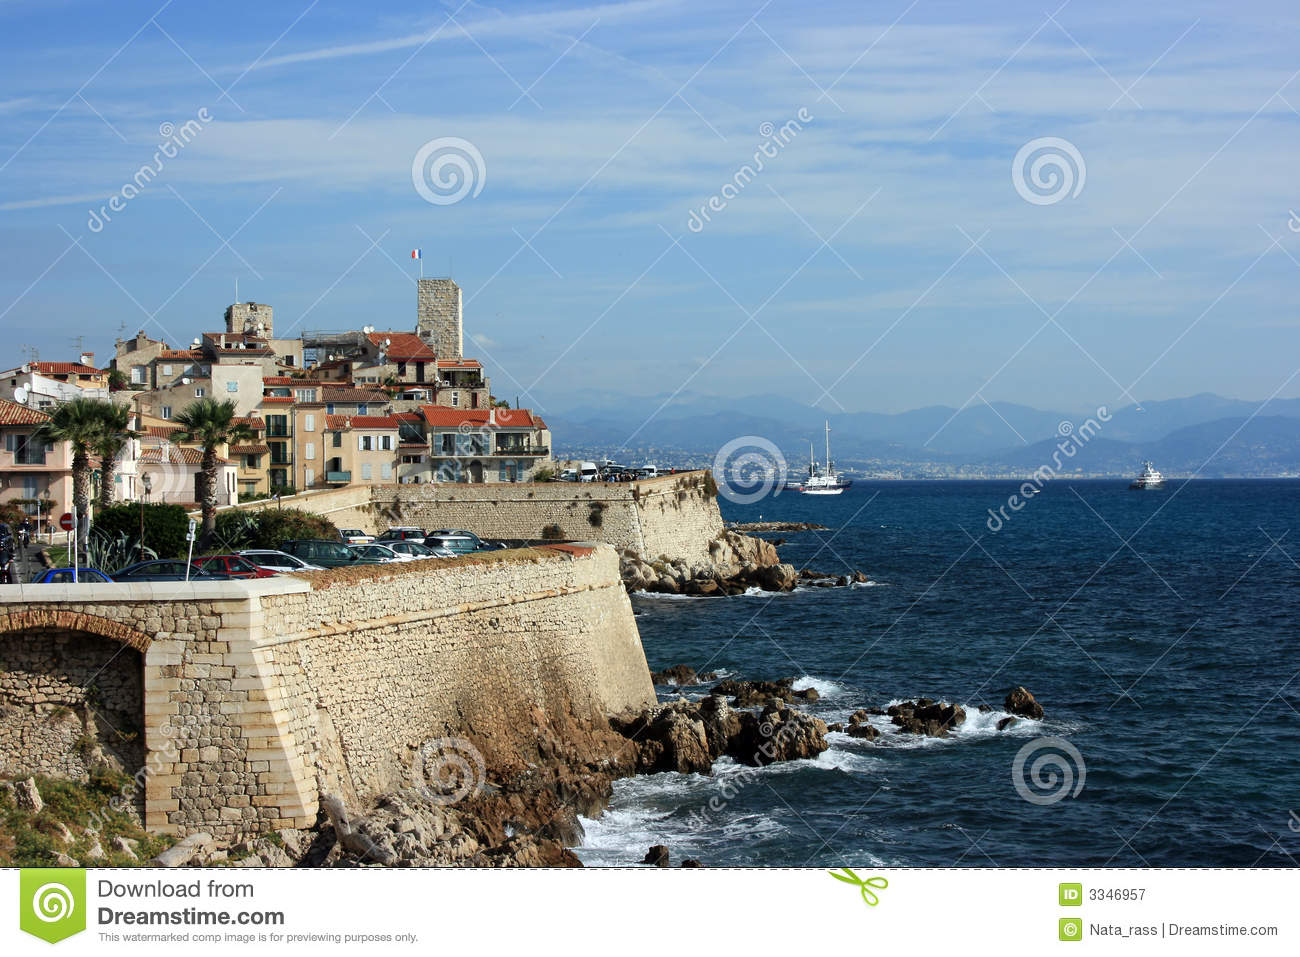 antibes at day 2 royalty free stock photography image 3346957. Black Bedroom Furniture Sets. Home Design Ideas